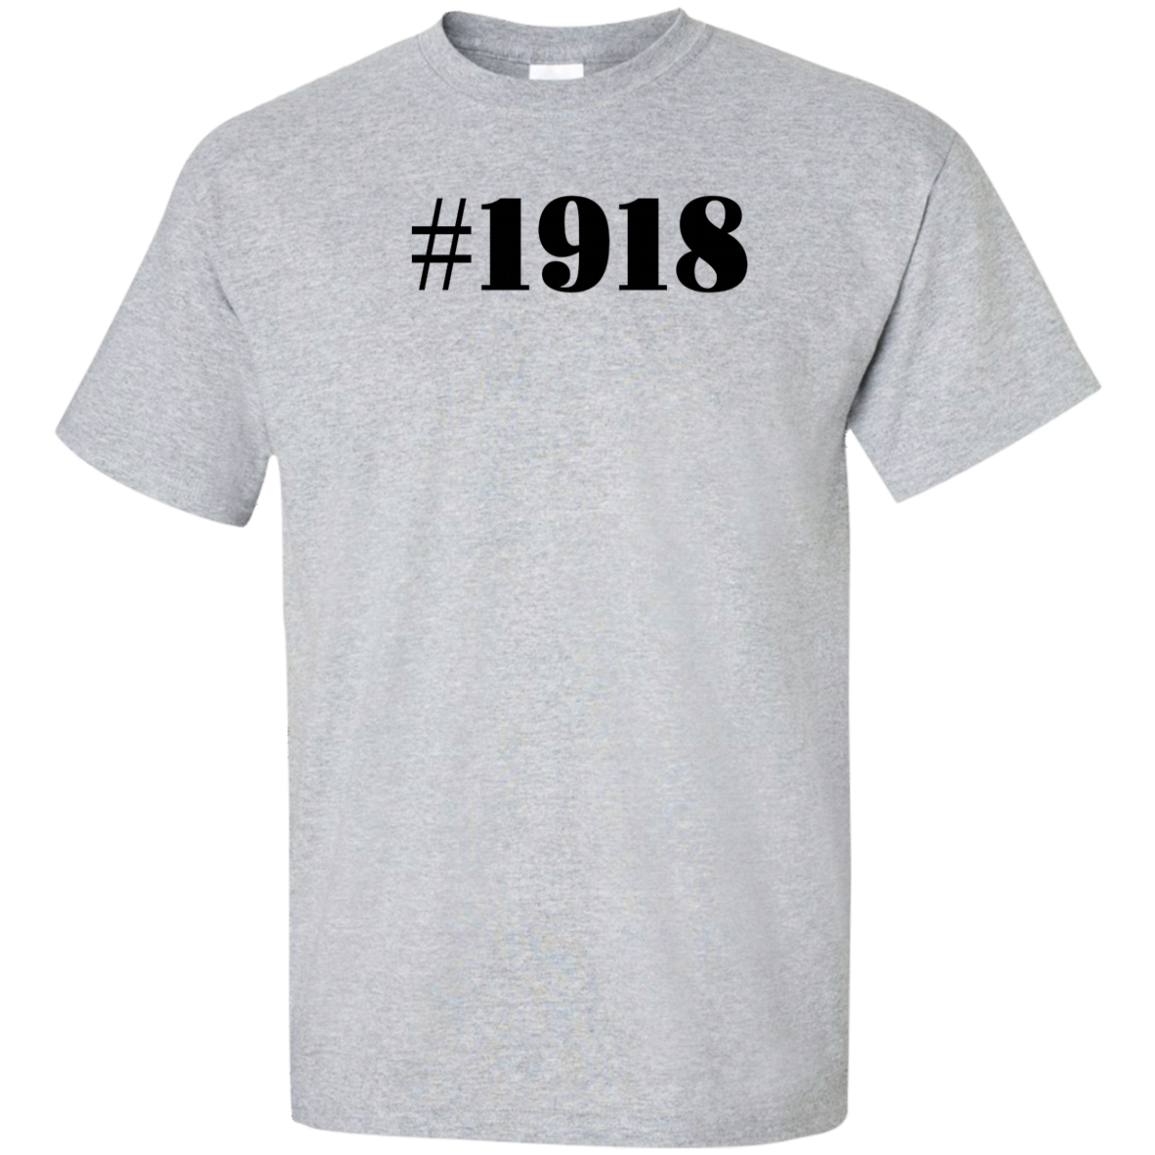 Restored 100 (1918) -- Vyrams Tall T-Shirt